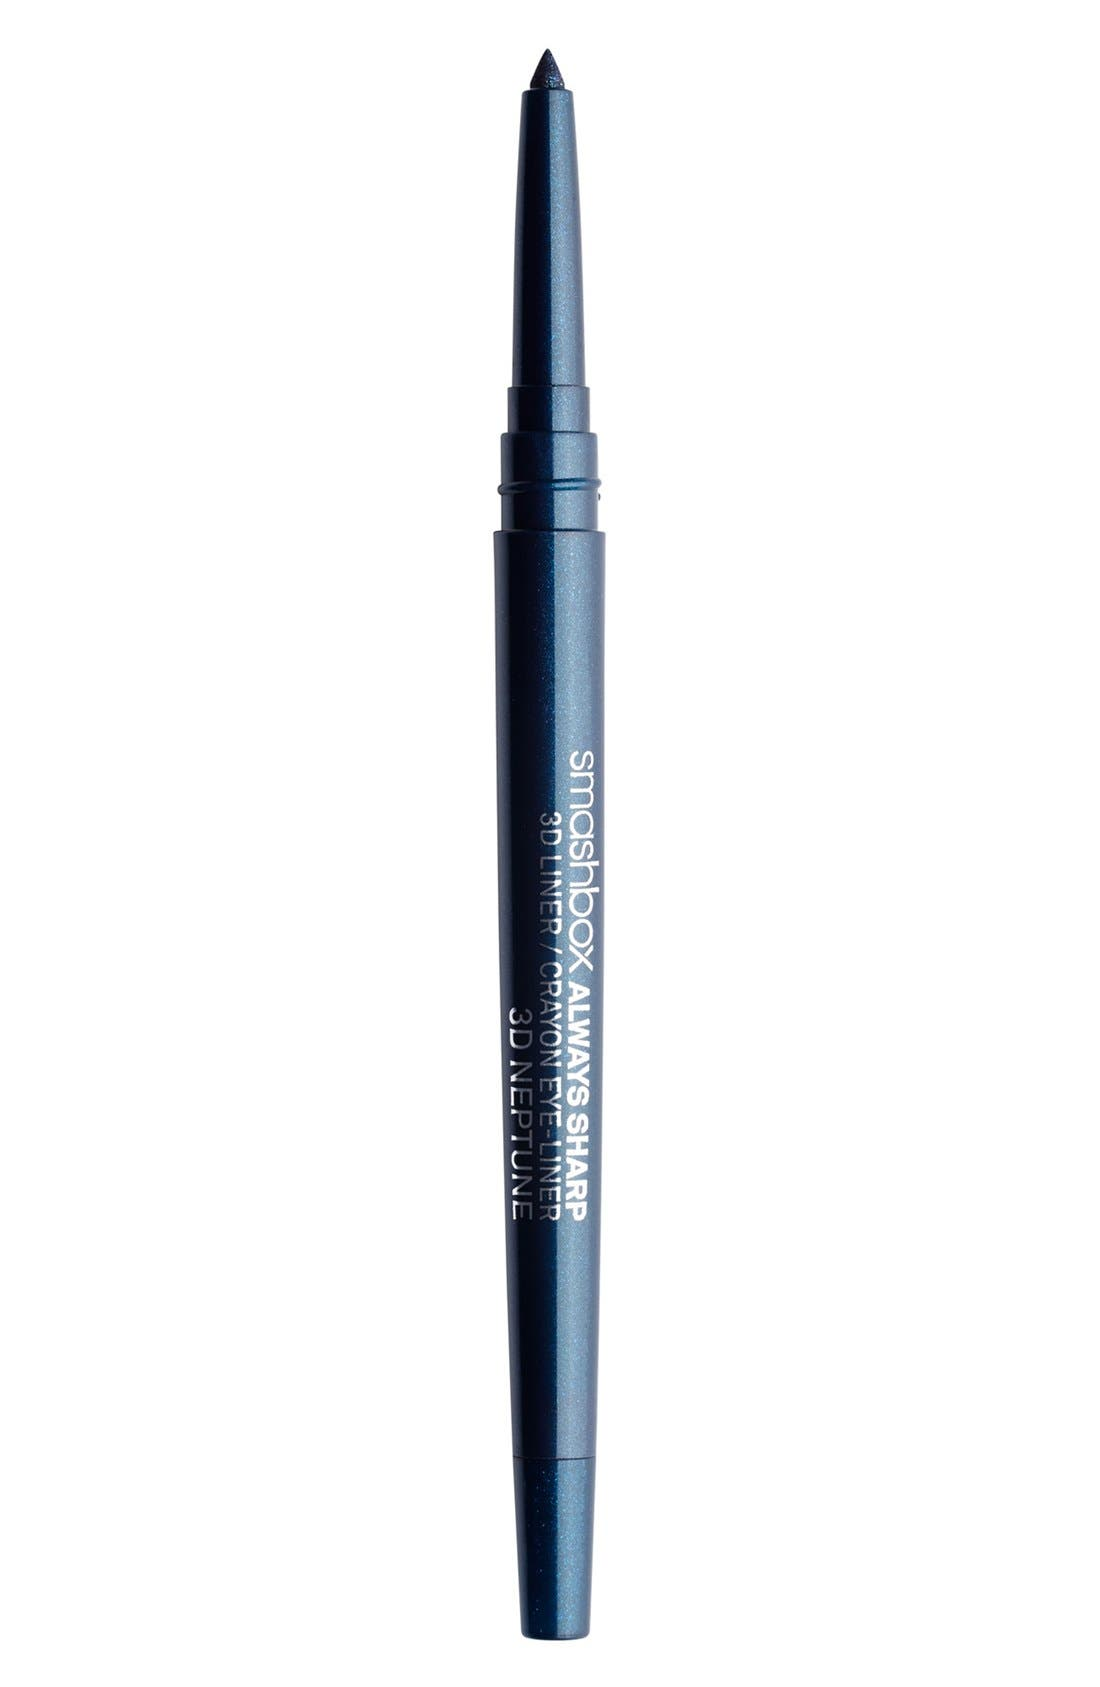 Smashbox Always Sharp 3D Eyeliner